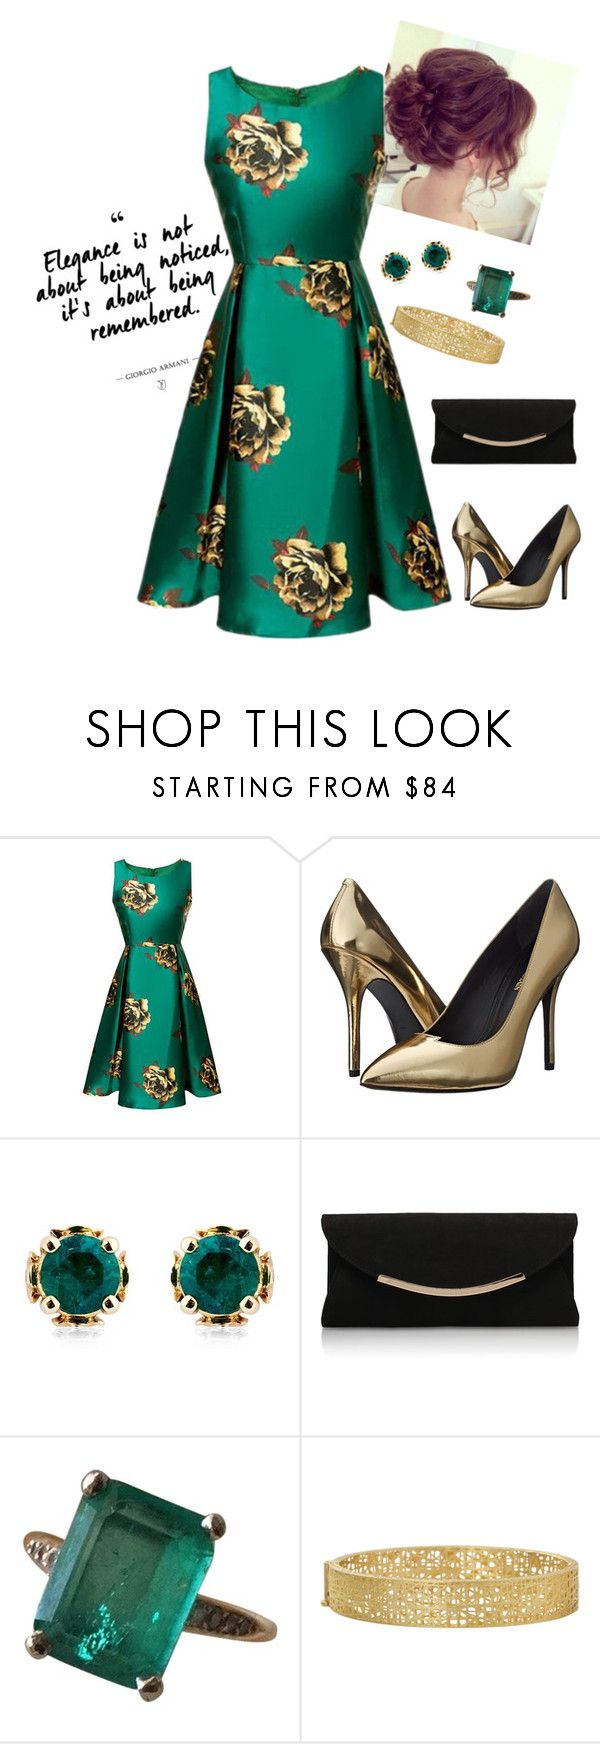 """The Wedding Guest"" by loves-fashion-style ❤ liked on Polyvore featuring Pierre Balmain, Theo Fennell, Carvela Kurt Geiger and Yossi Harari"